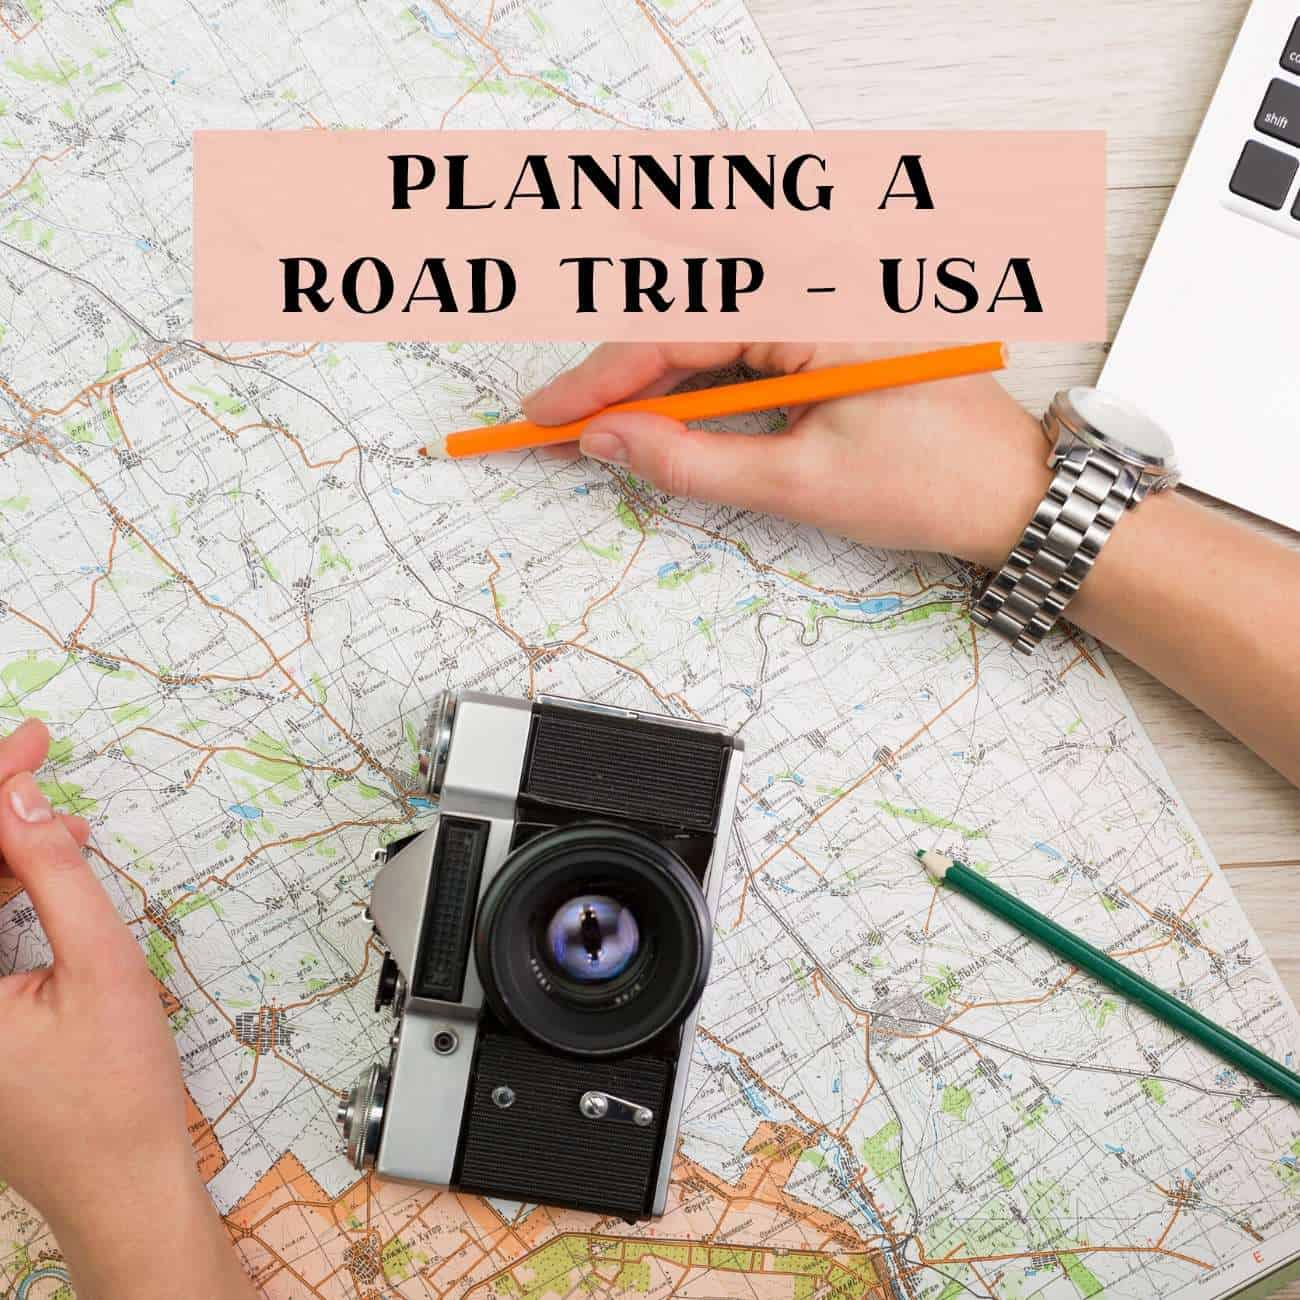 Plan a USA road trip